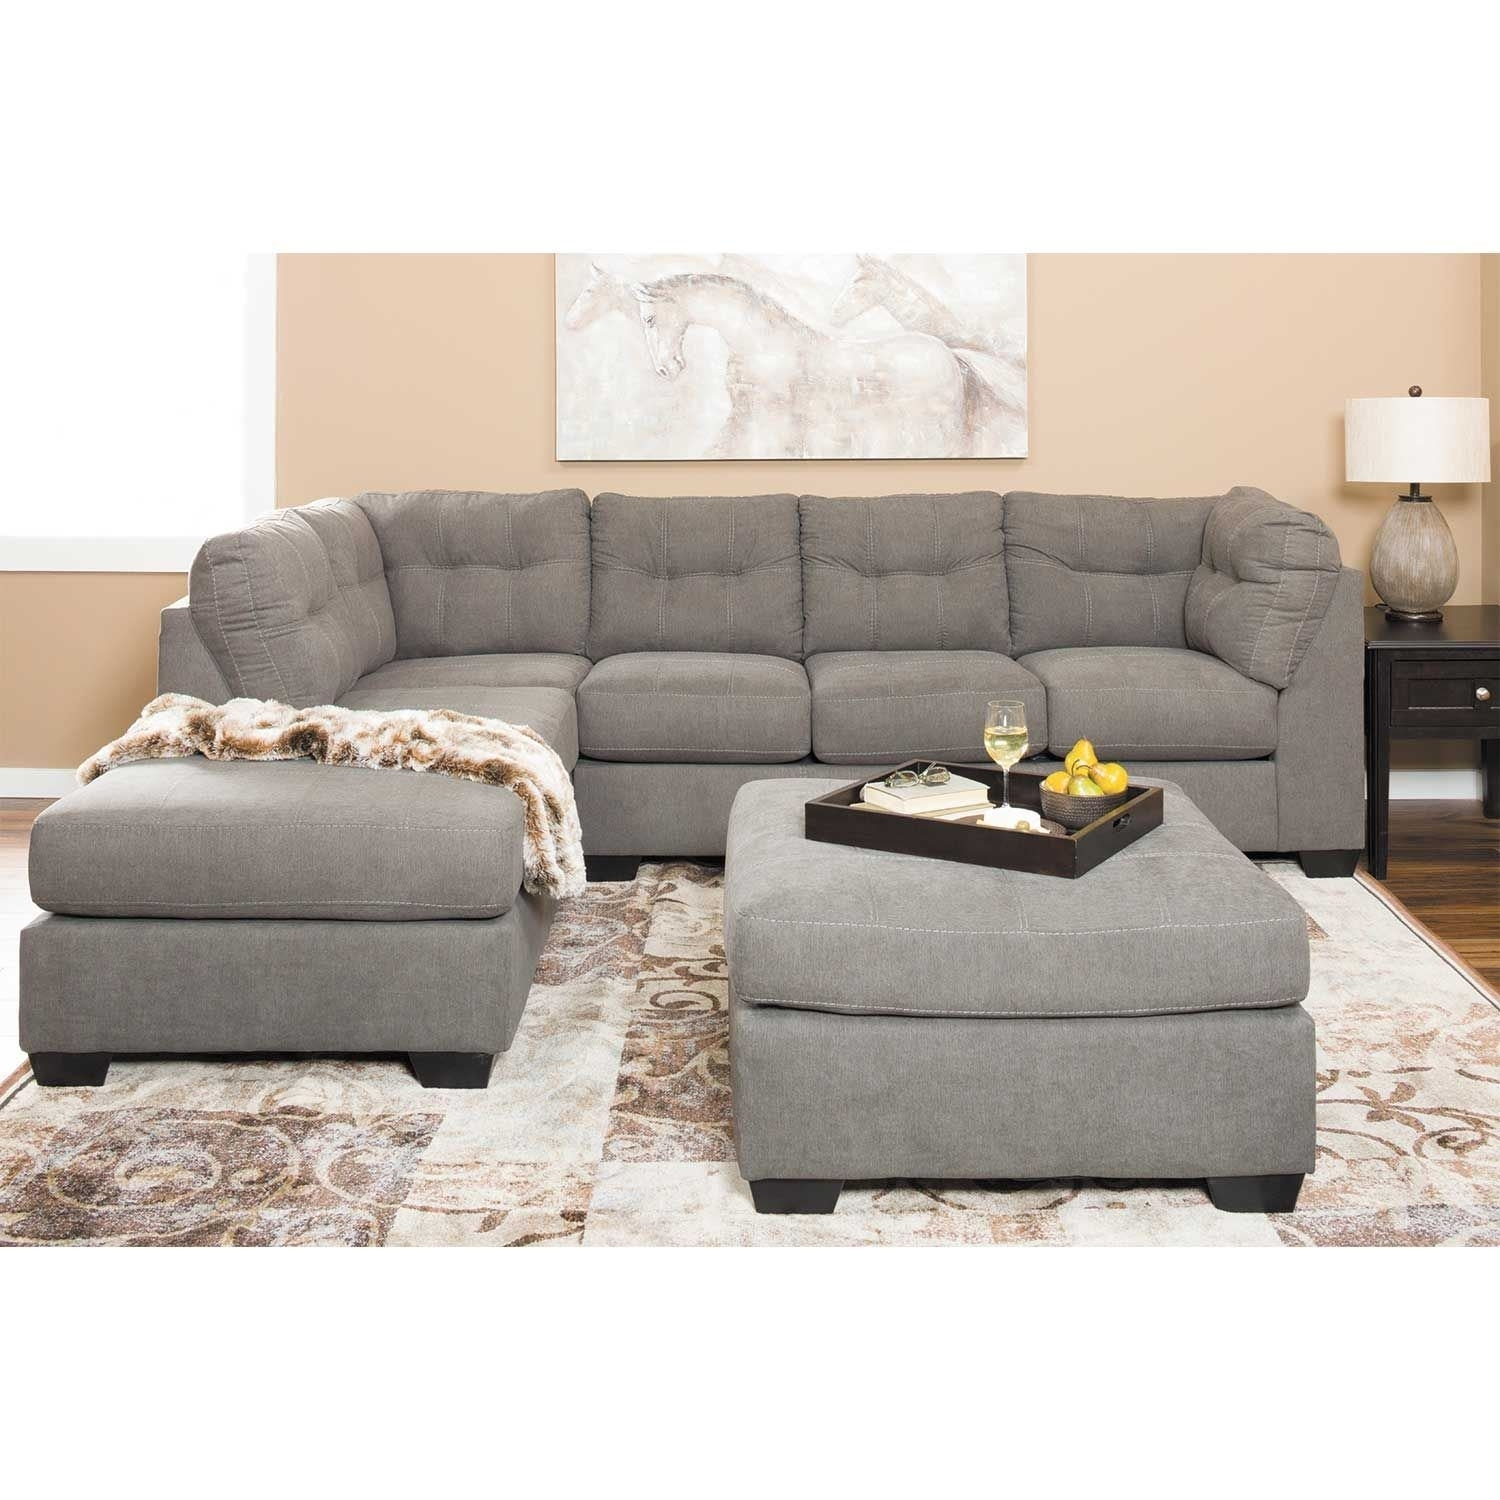 Maier Charcoal 2 Piece Sectional With Laf Chaise | 4520016/67 With Marissa Ii 3 Piece Sectionals (View 20 of 25)